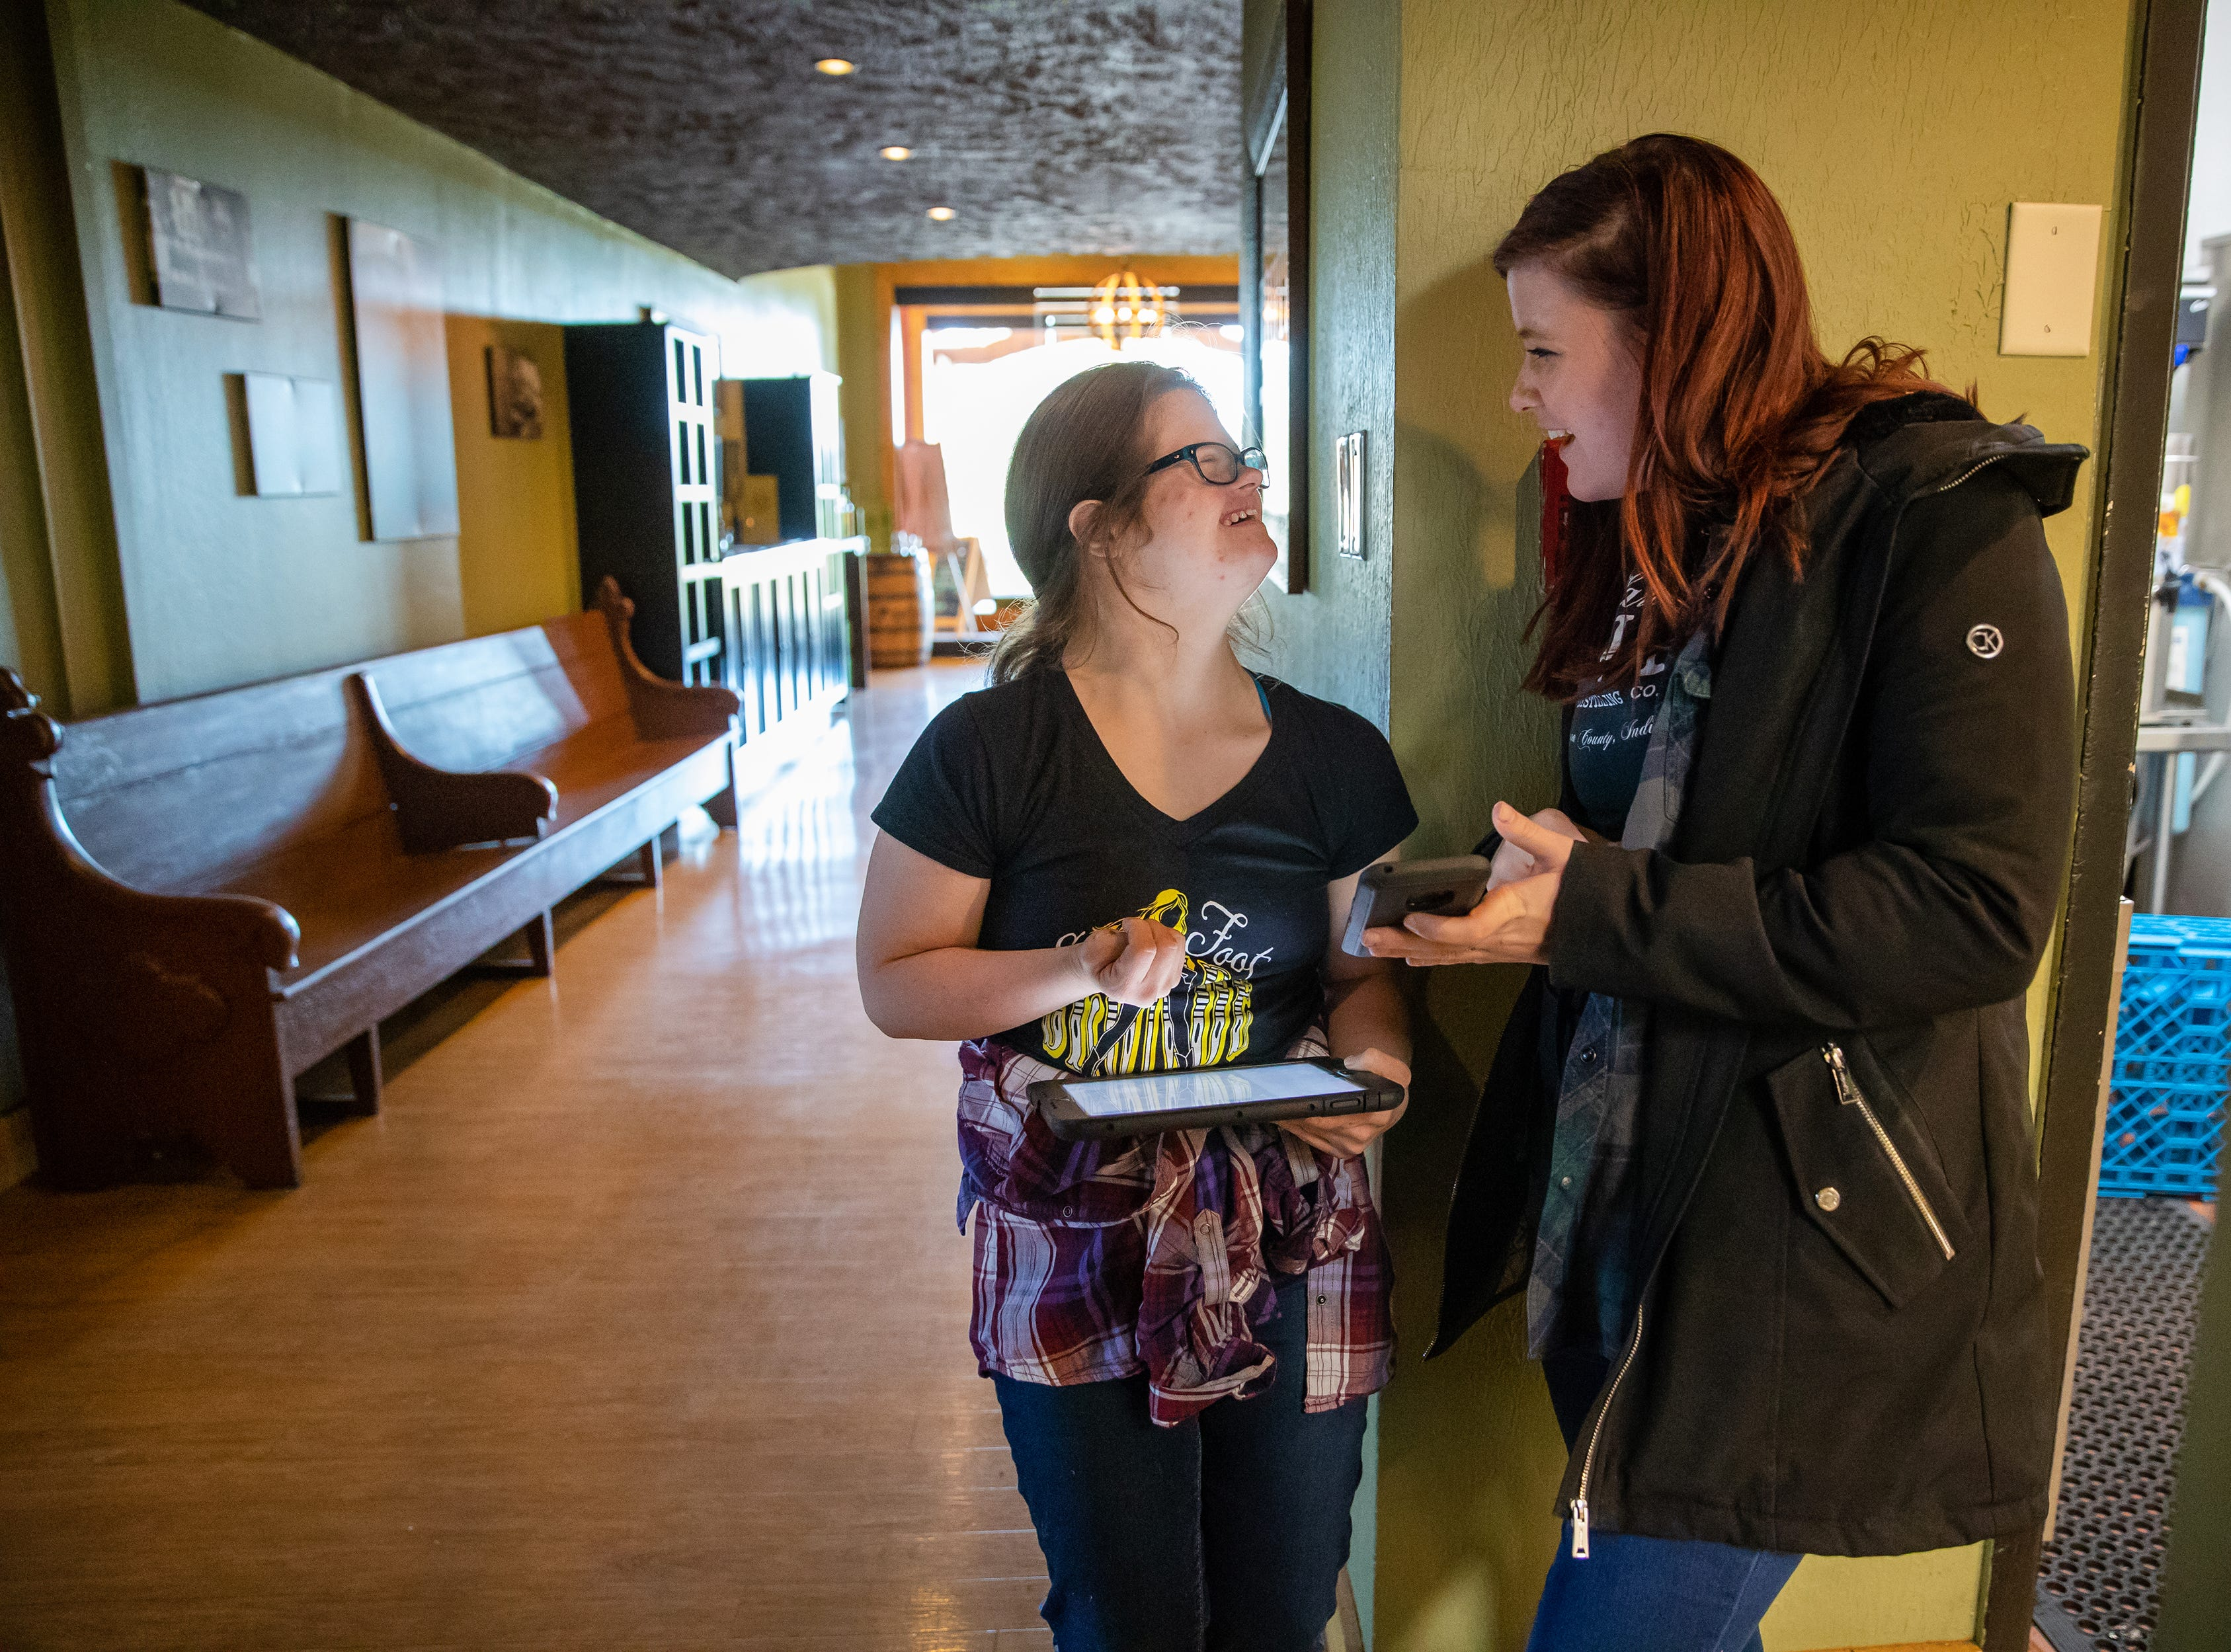 At the beginning of her shift, Mickey Deputy (left) inputs various wait staff into an iPad program at Big Woods in Franklin, Ind., with the help from server Kalyn Guyer on Thursday, Oct. 18, 2018.